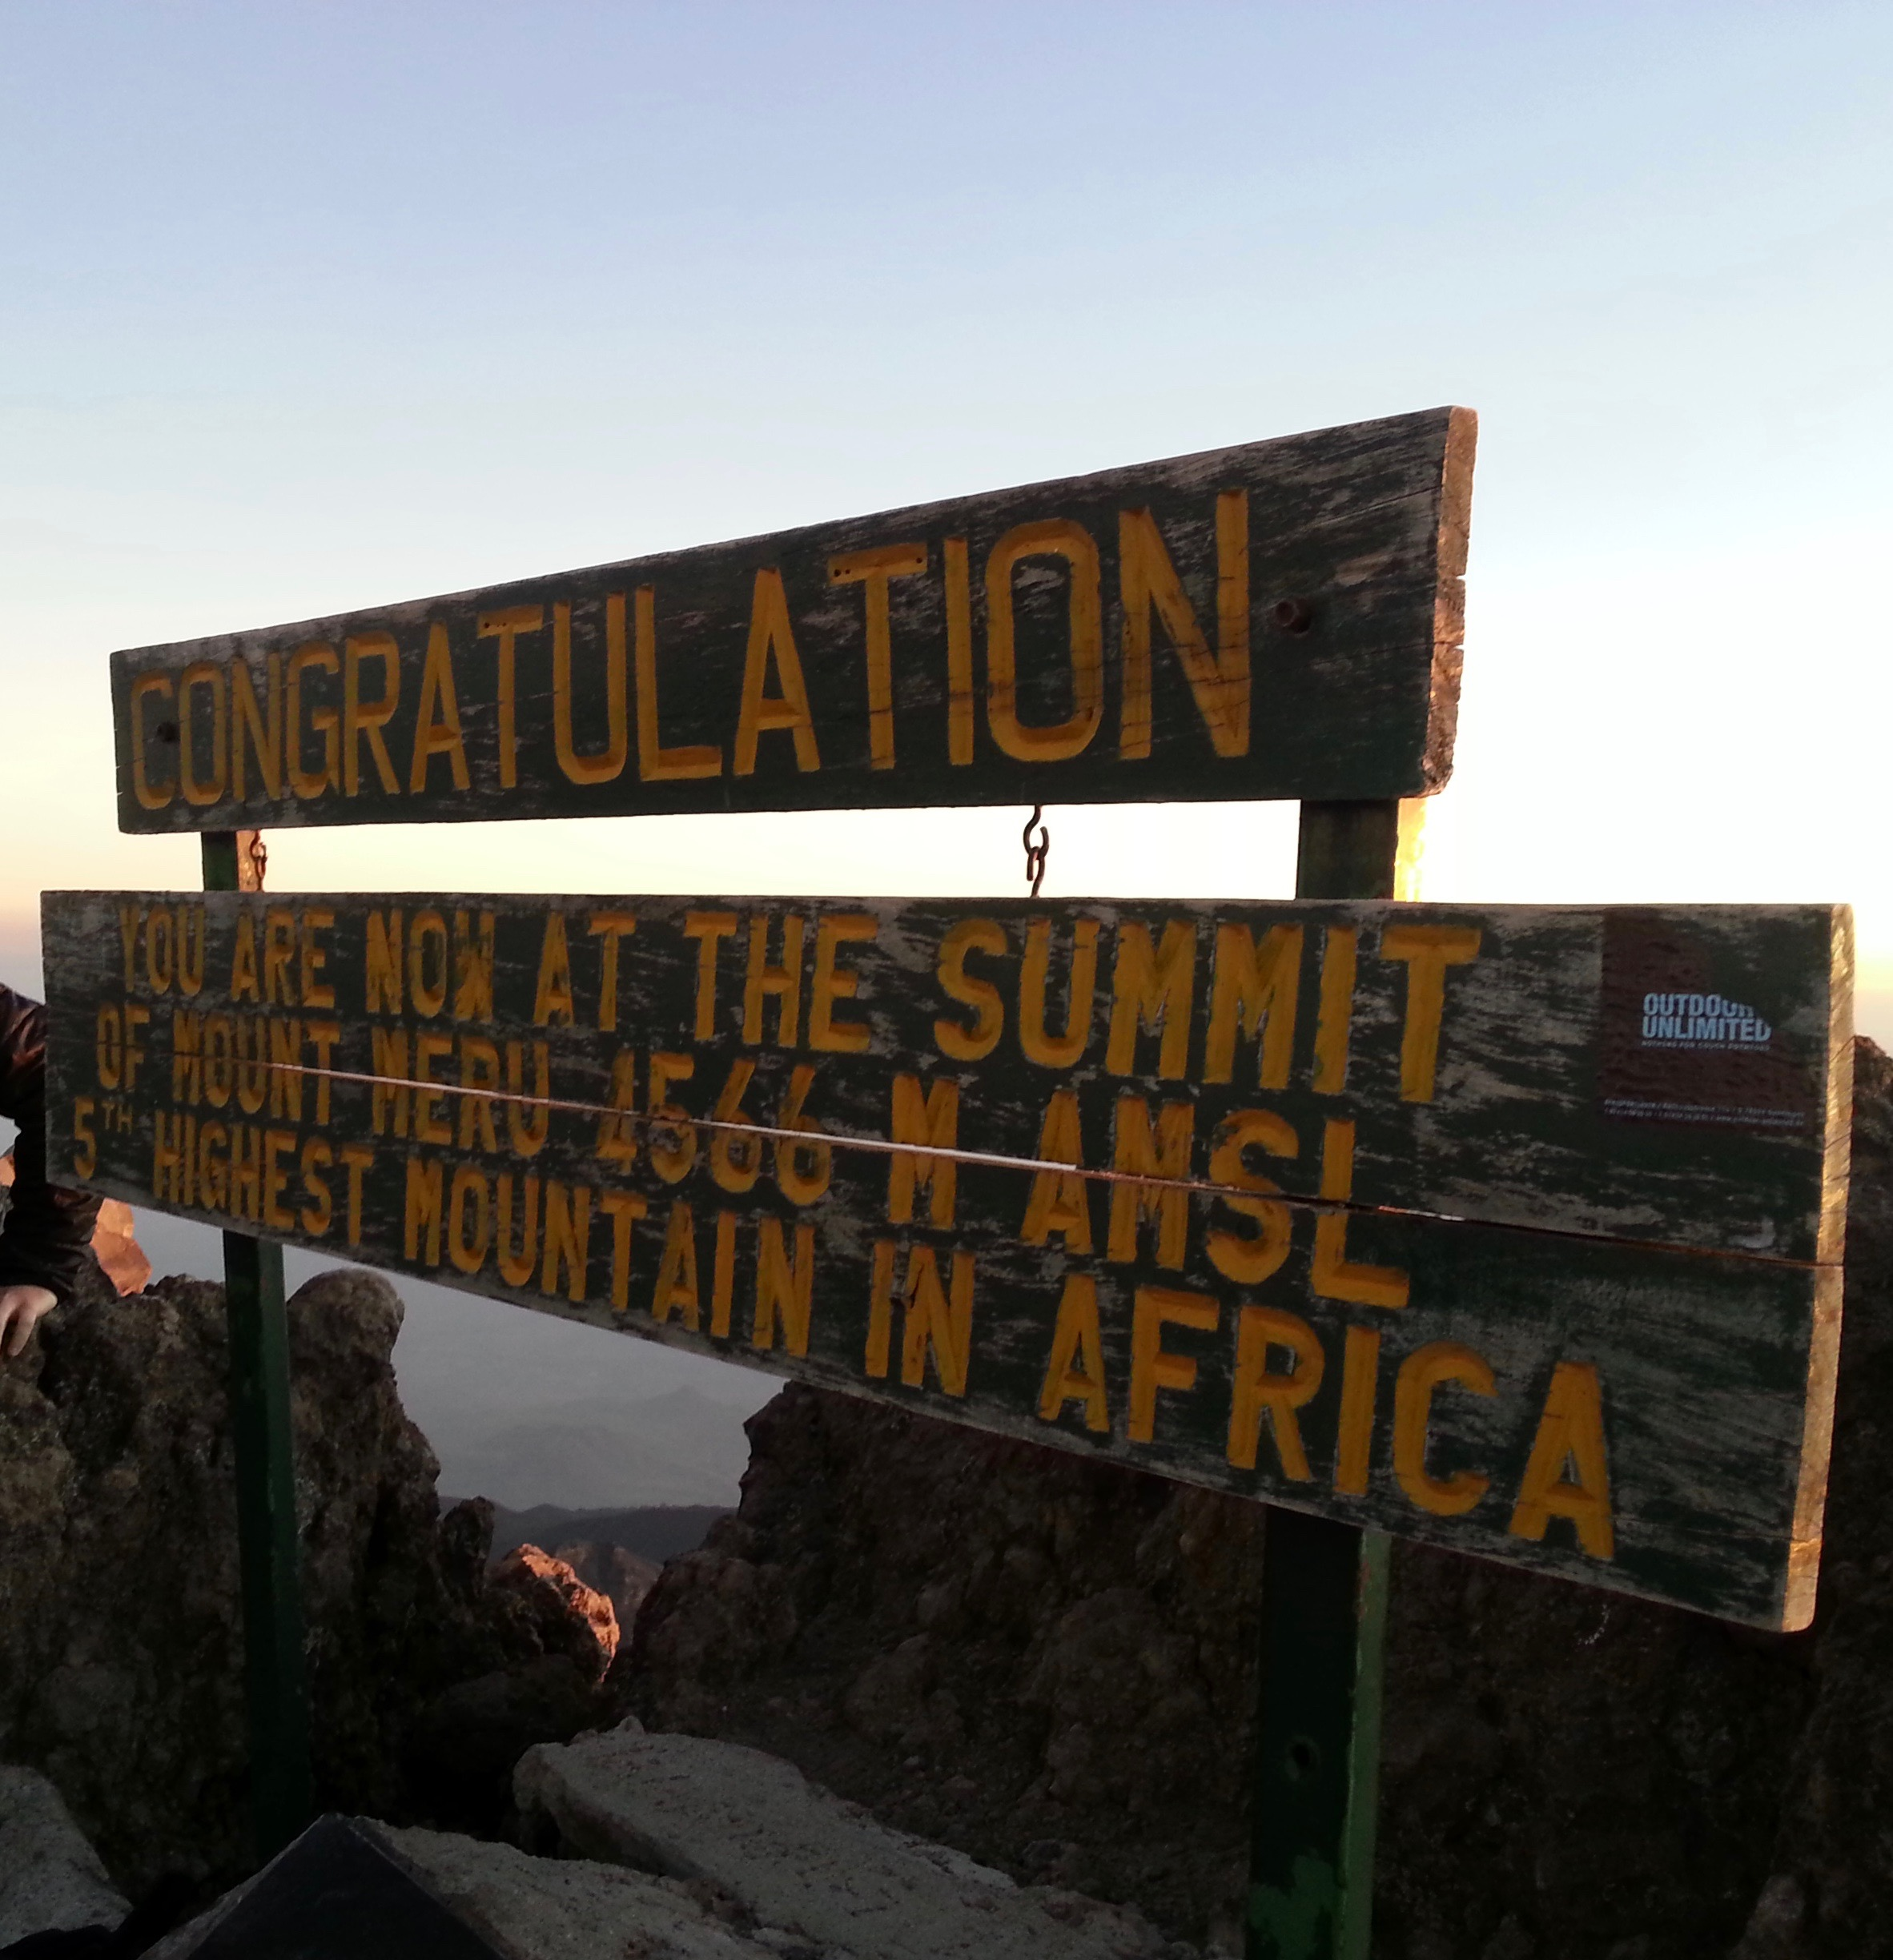 Reaching the Summit: Image Courtesy of Amani Chomolla